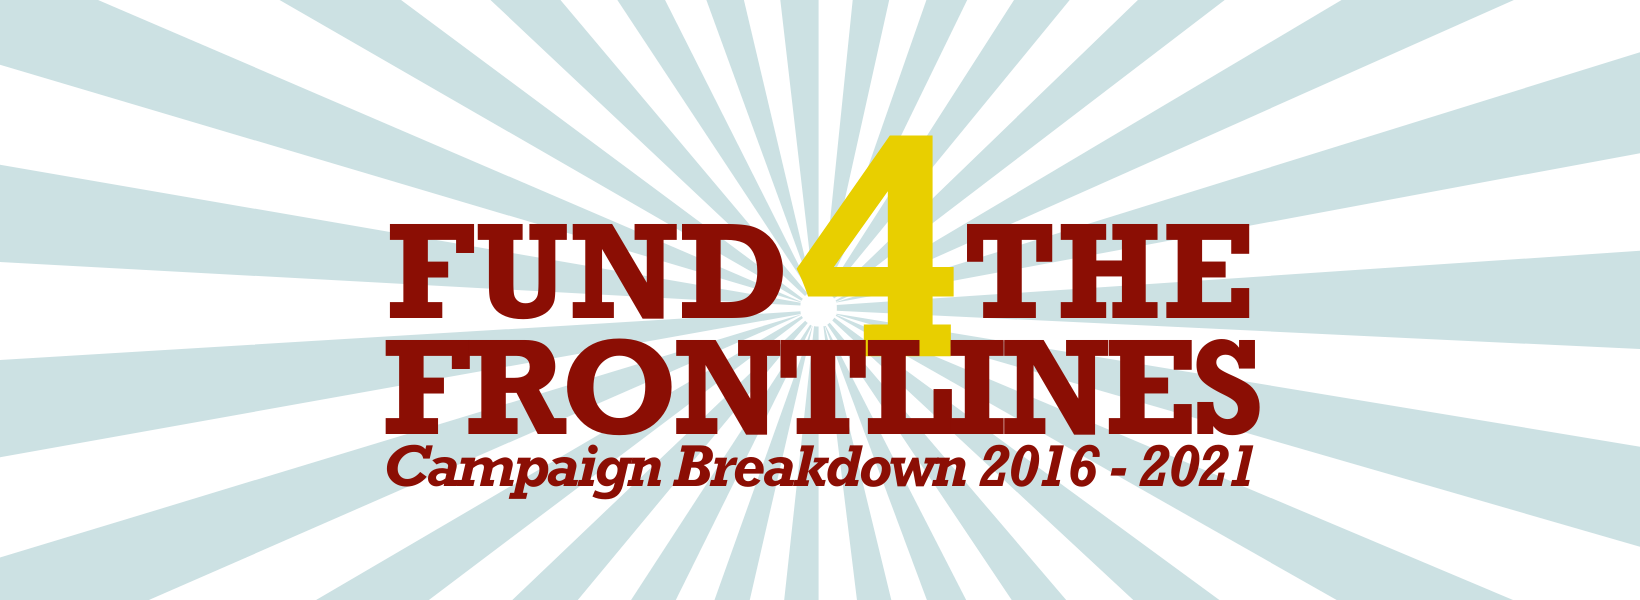 Rectangular banner with a light blue background of radiating rays. Text in the middle reads Fund 4 the Frontlines Campaign Breakdown 2016-2021